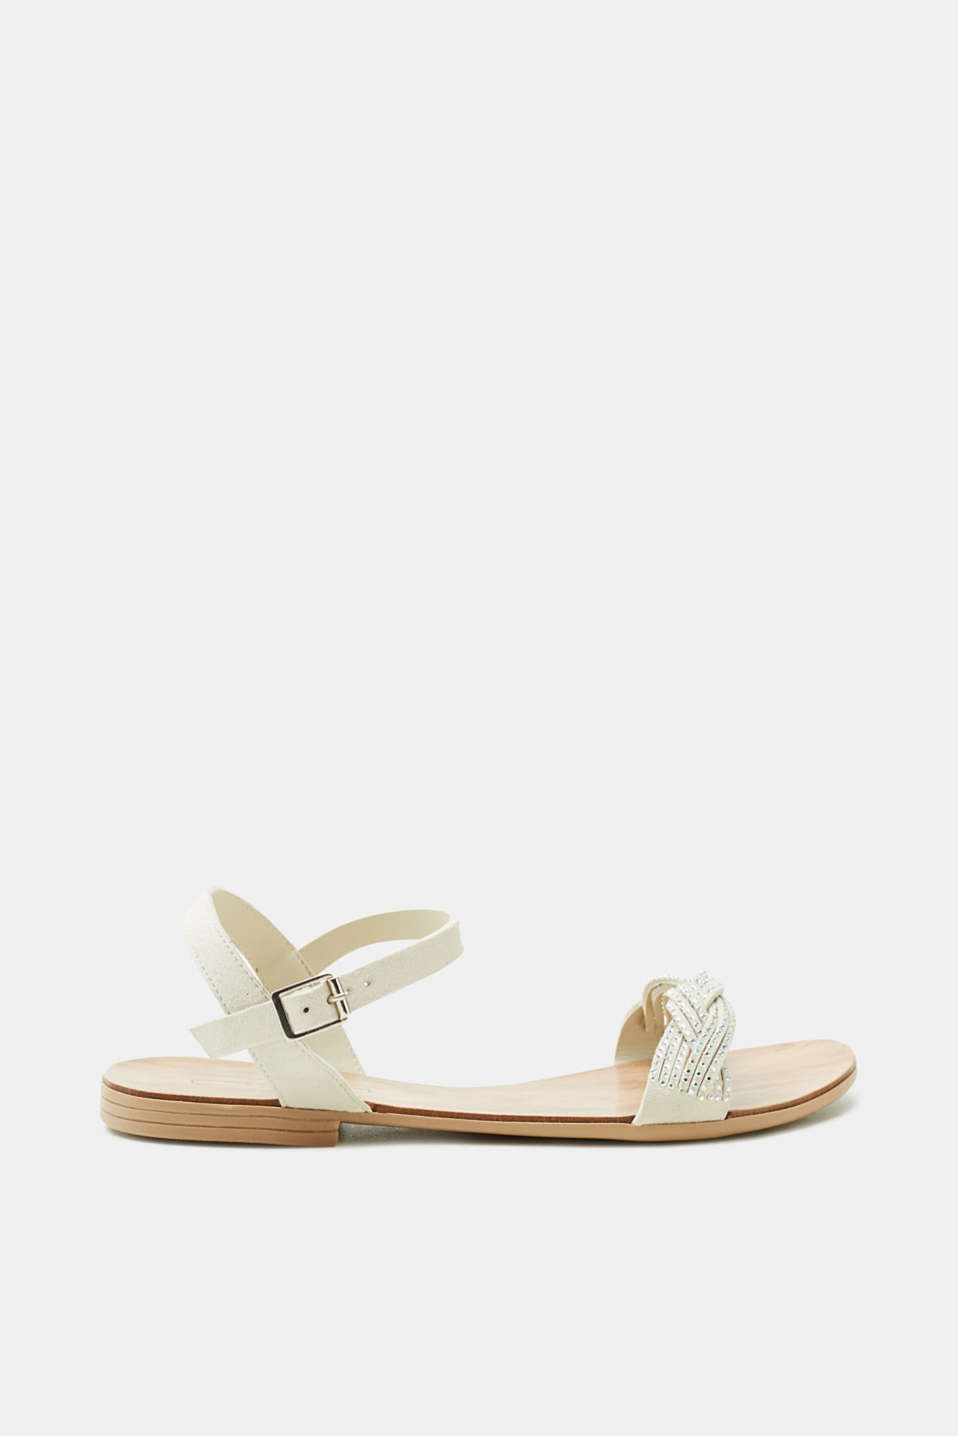 Esprit - Flat sandals with leather straps and glittering stones